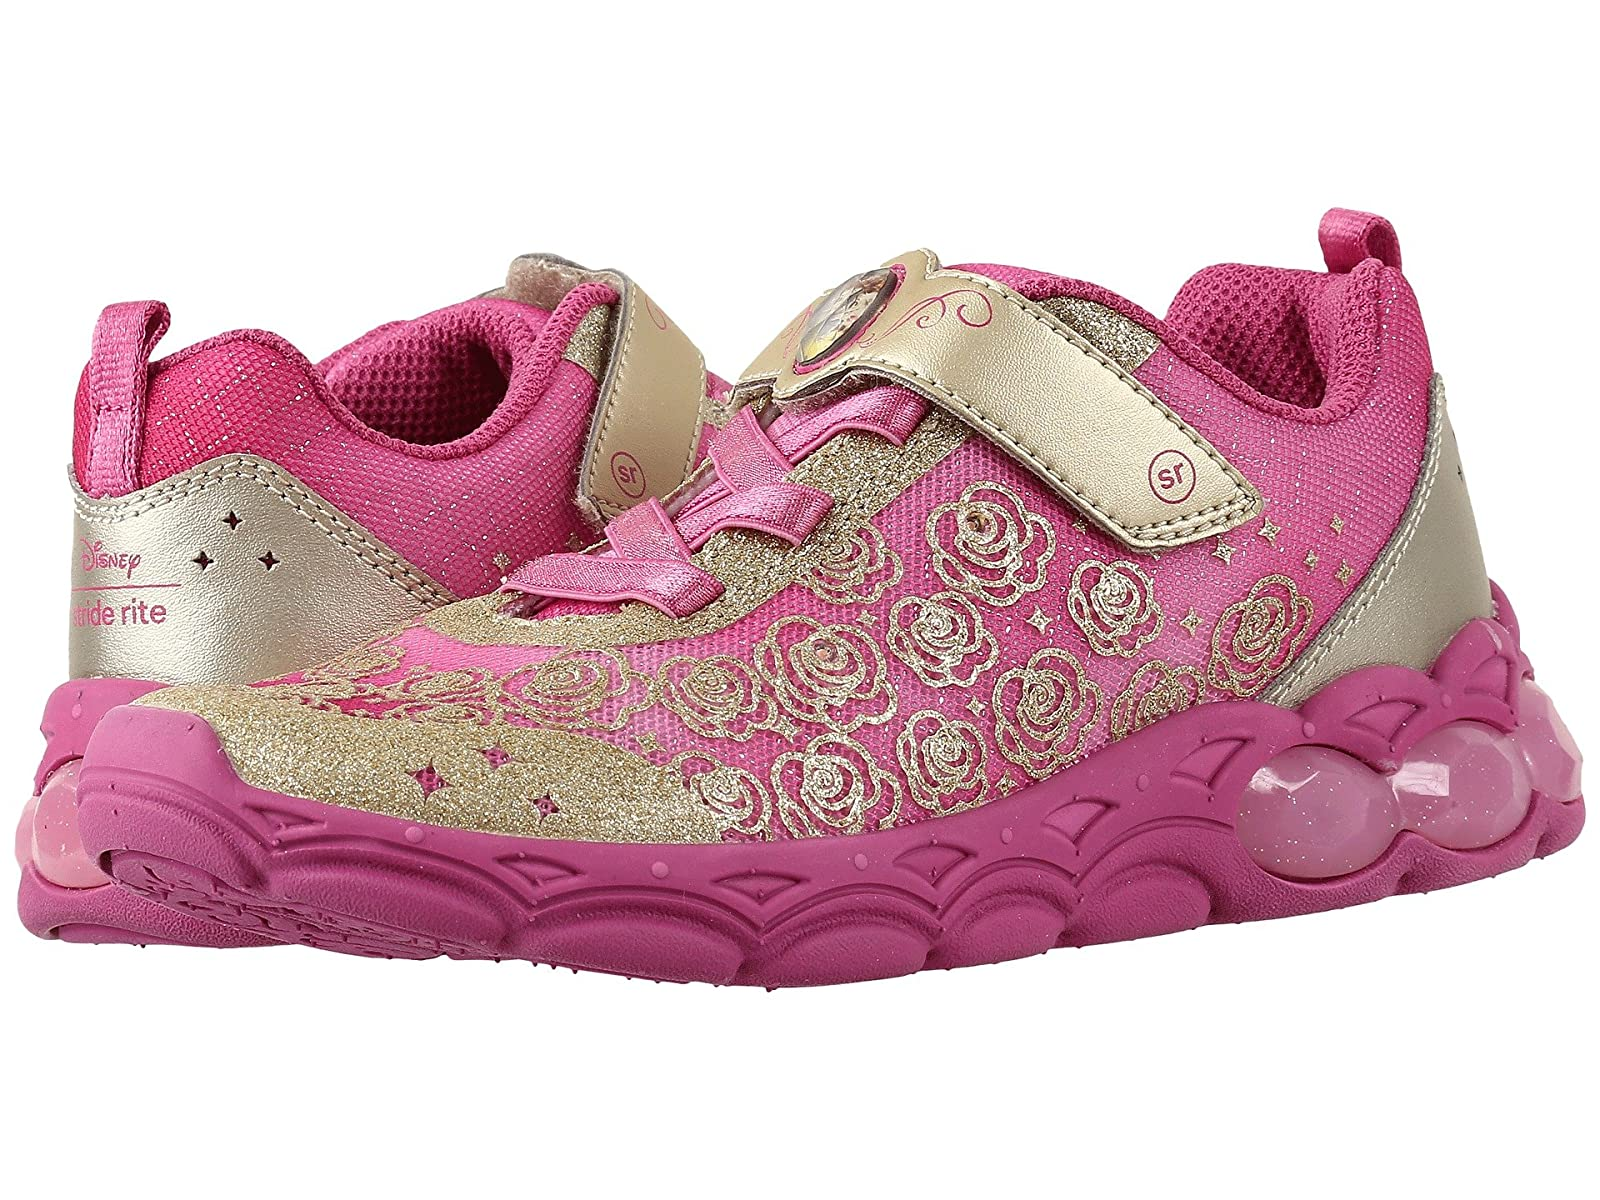 Stride Rite Disney® Belle Of The Ball (Toddler/Little Kid)Cheap and distinctive eye-catching shoes